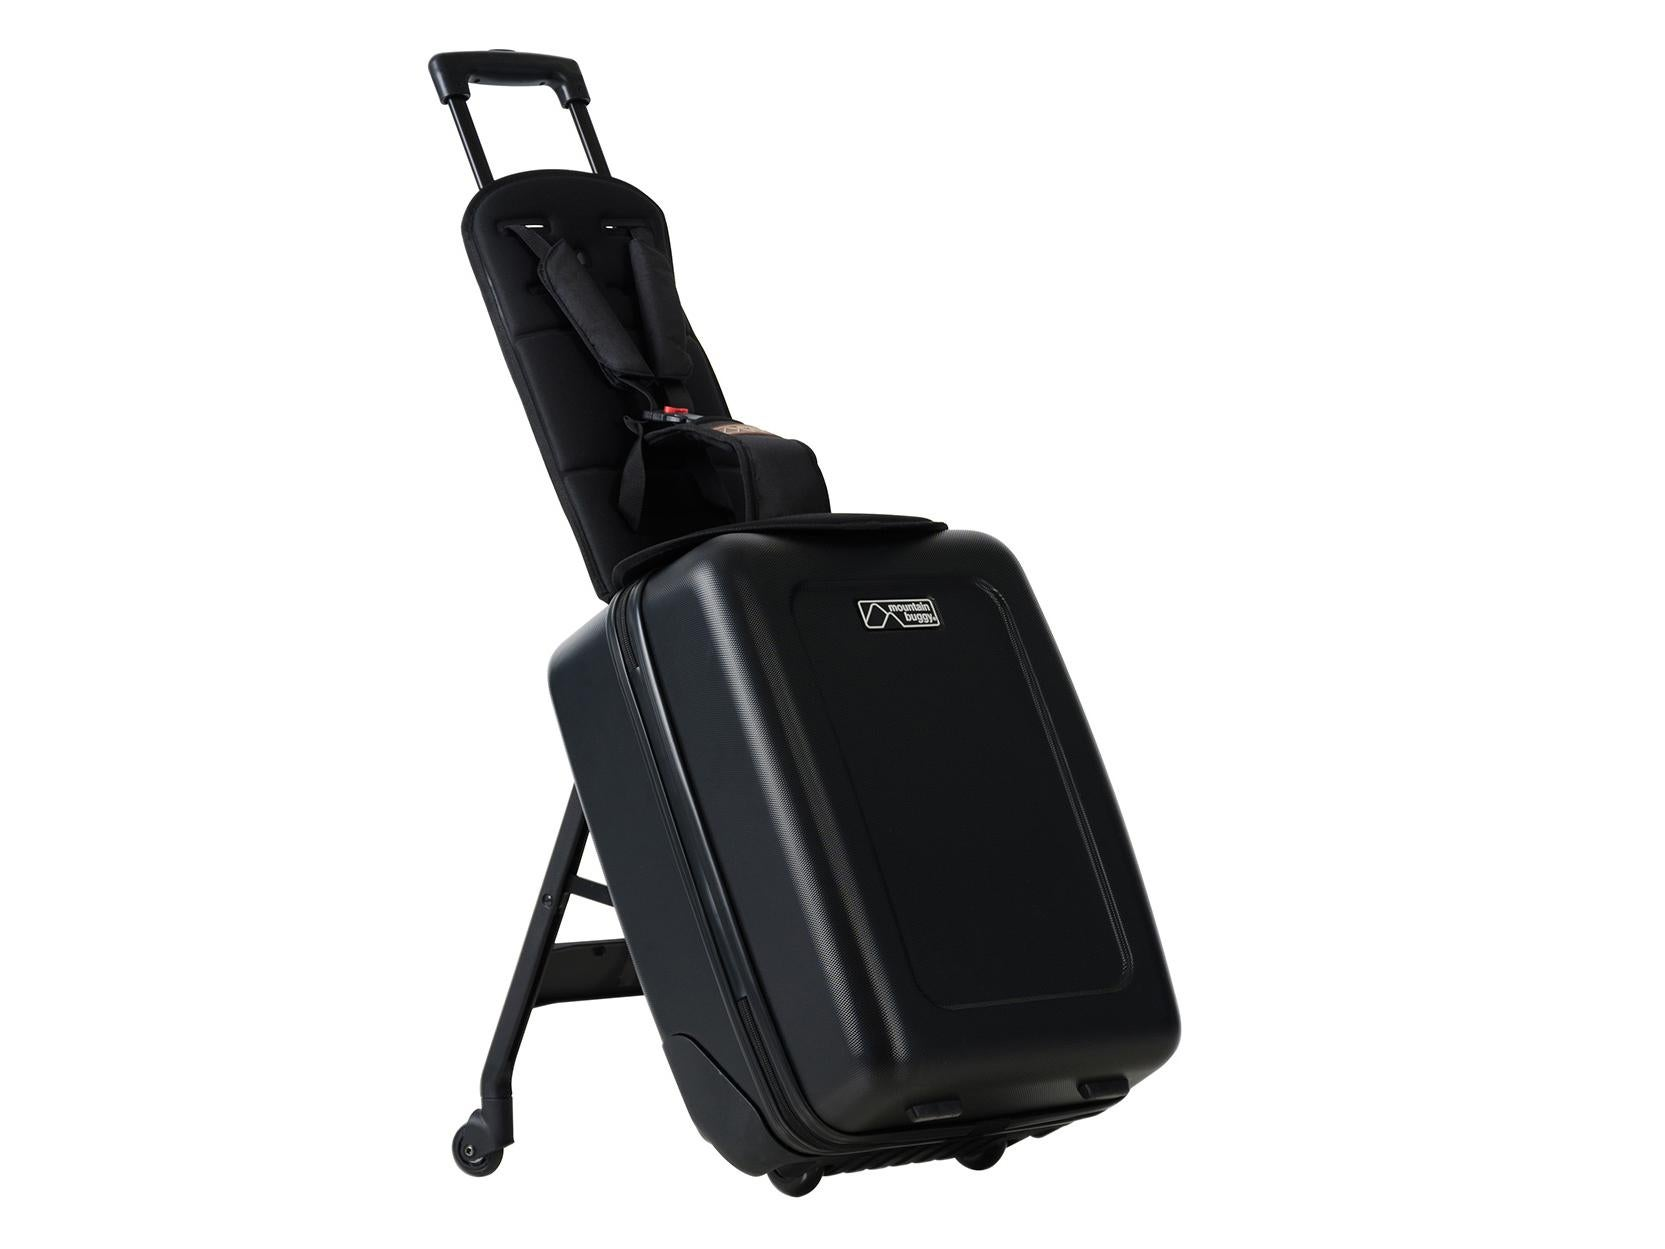 aaf0b8ed1aa06 Best children's luggage: Suitcases, backpacks and carry-ons that are ...